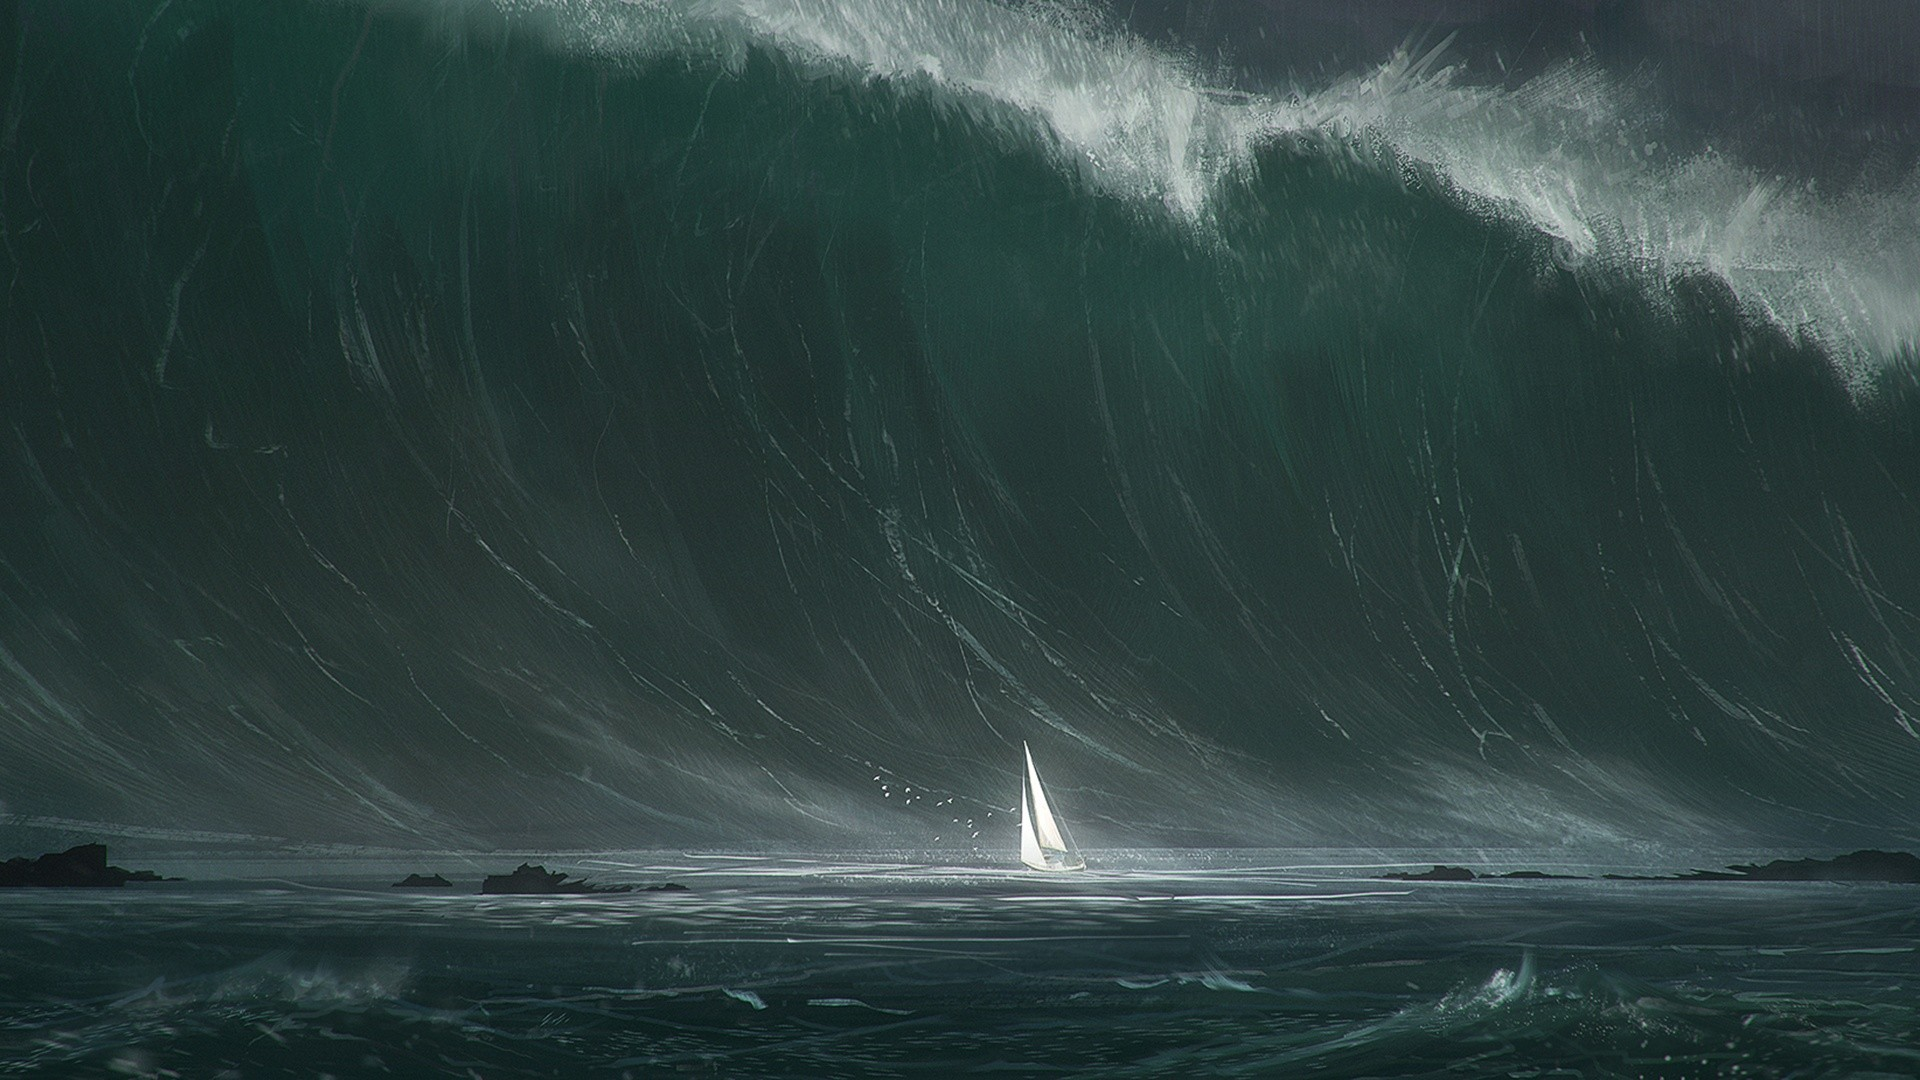 Explore Stormy Sea, Ocean Waves, and more!